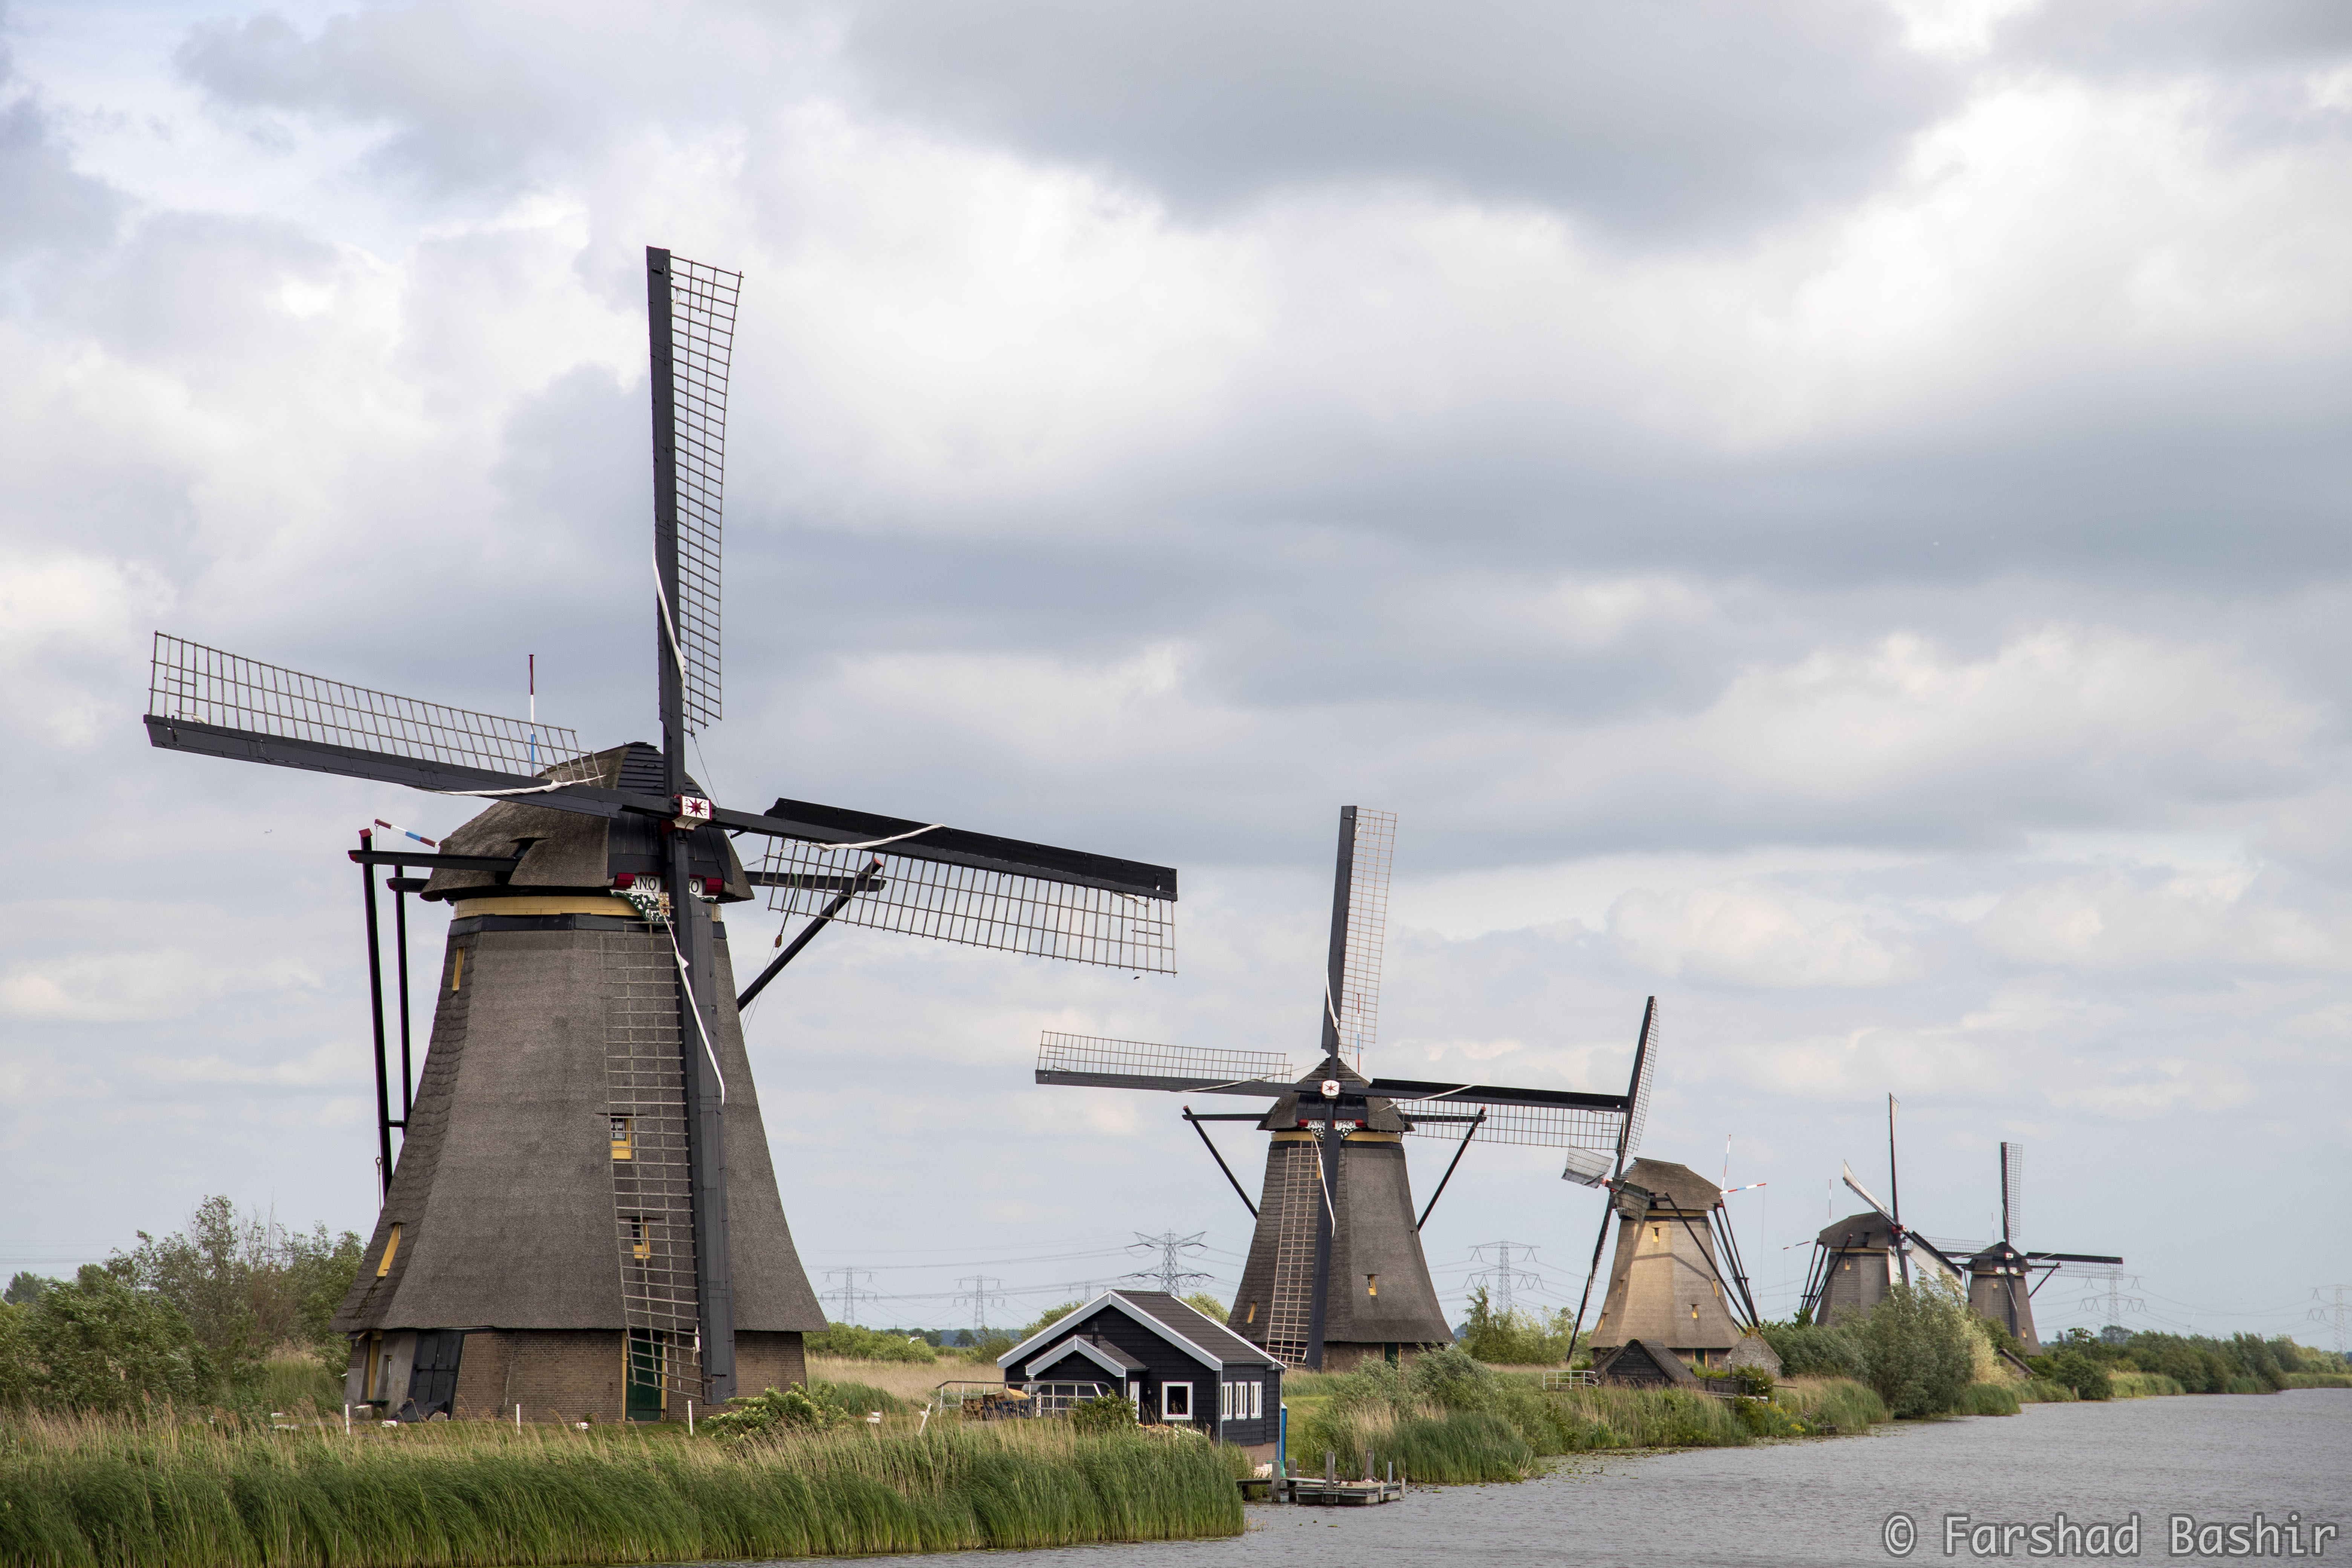 Five windmills of Kinderdijk